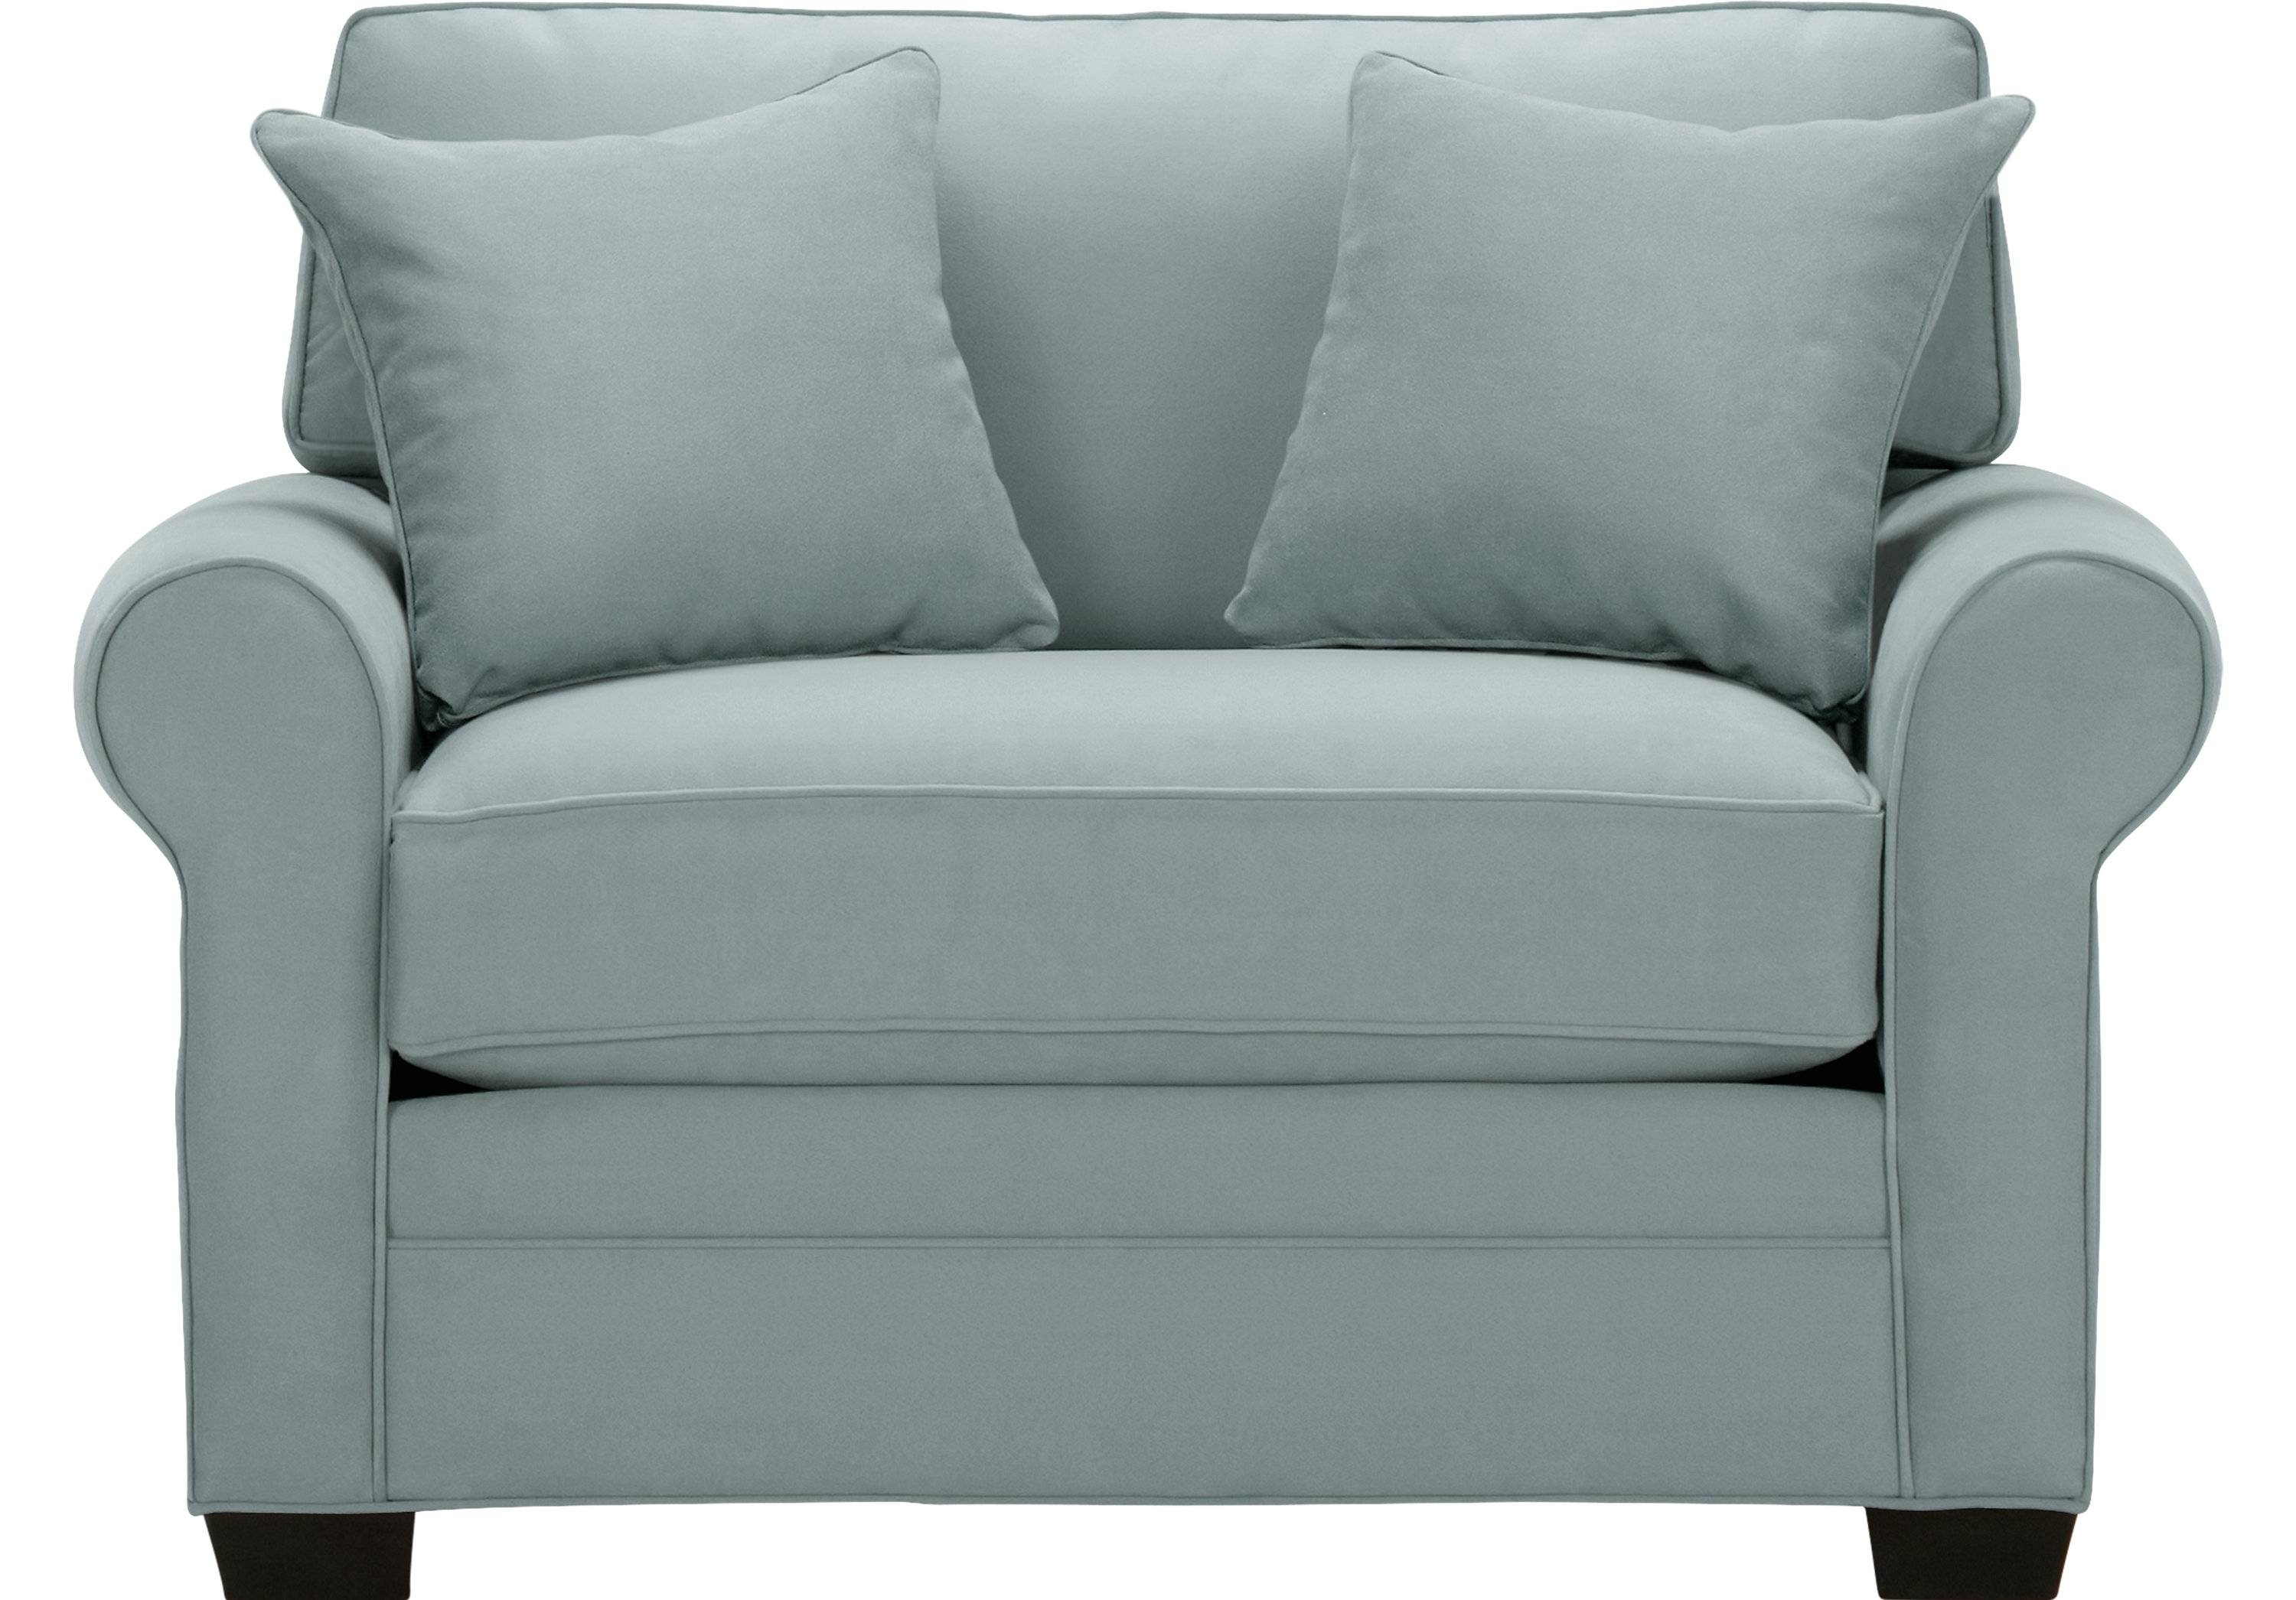 Cindy Crawford Sleeper Sofa 82 With Cindy Crawford Sleeper Sofa with regard to Cindy Crawford Sleeper Sofas (Image 7 of 15)